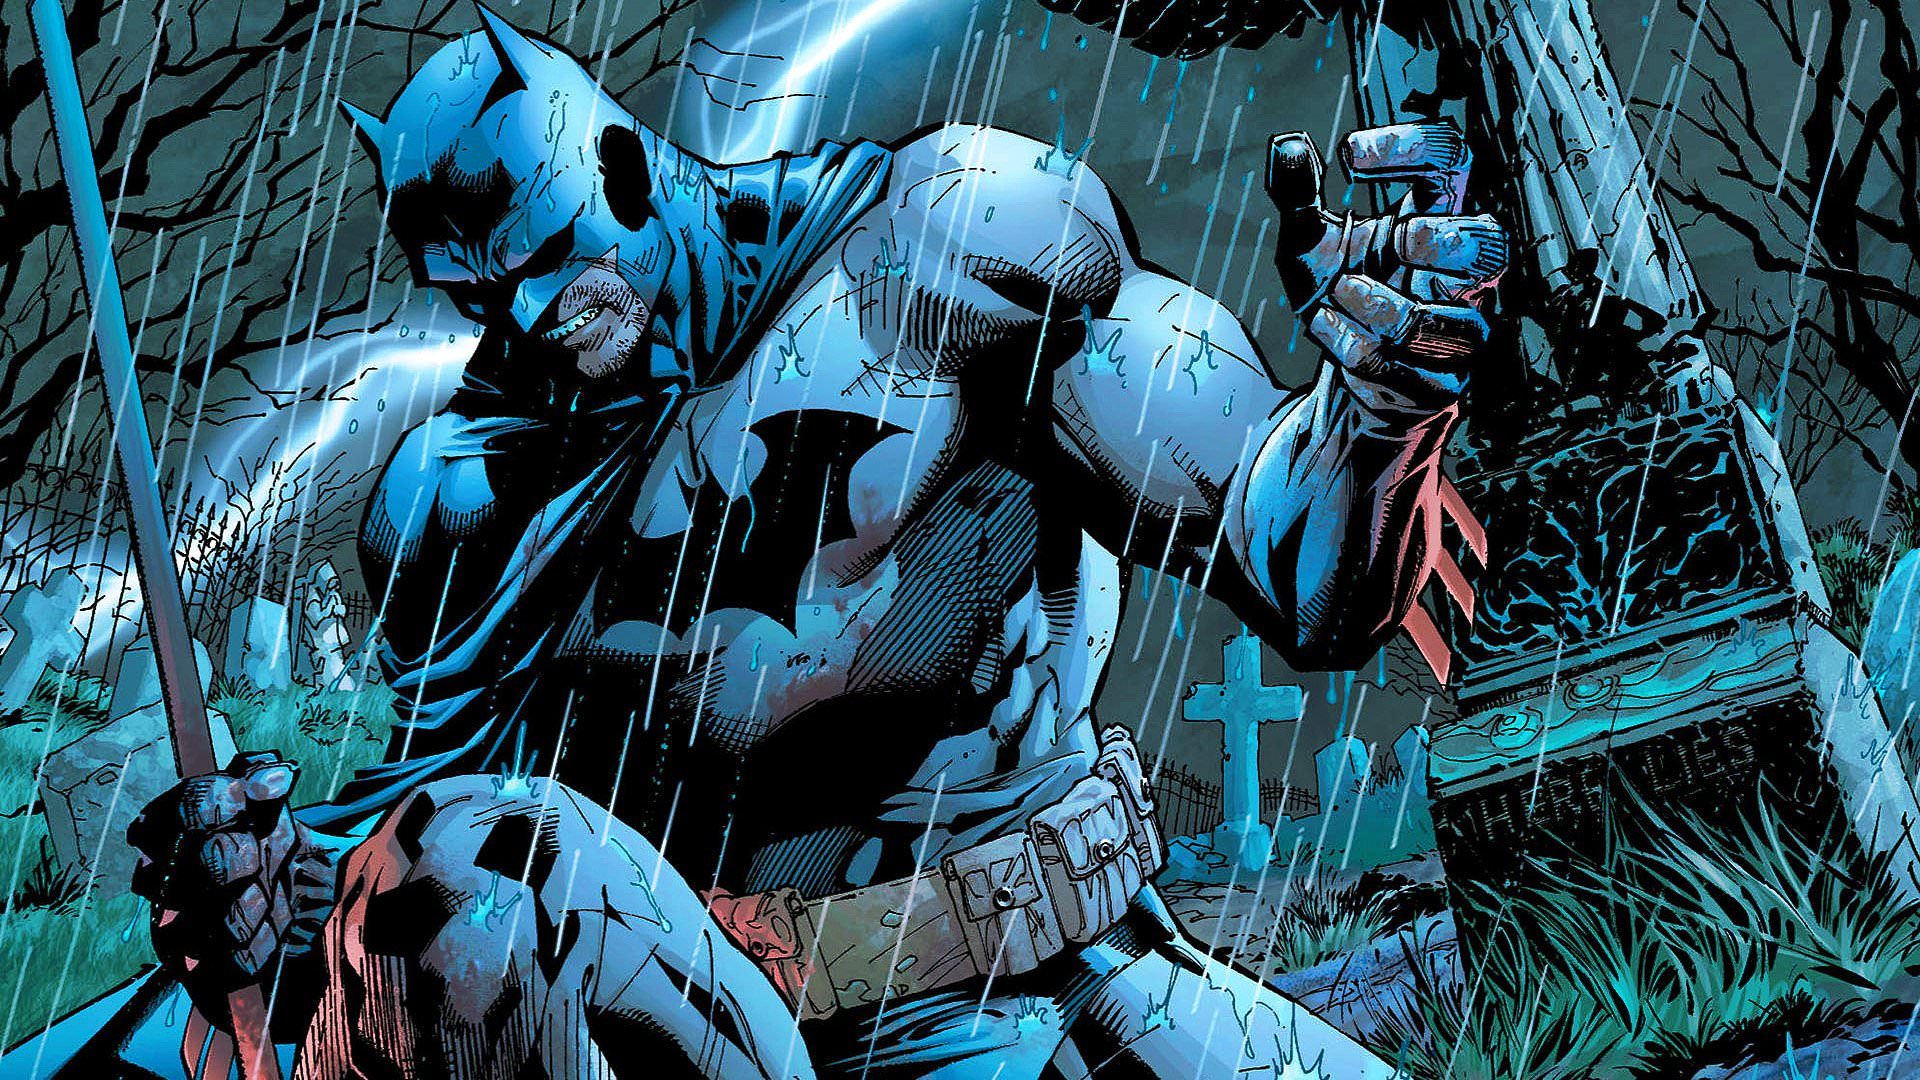 analysis of batman Analysis on batman, deviance, and campandy medhurst, the author of batman, deviance, and camp, has an extremely interesting but different perspective on batman that is unknown to most people he provides the readers with a thorough and deep analysis to argue that batman.